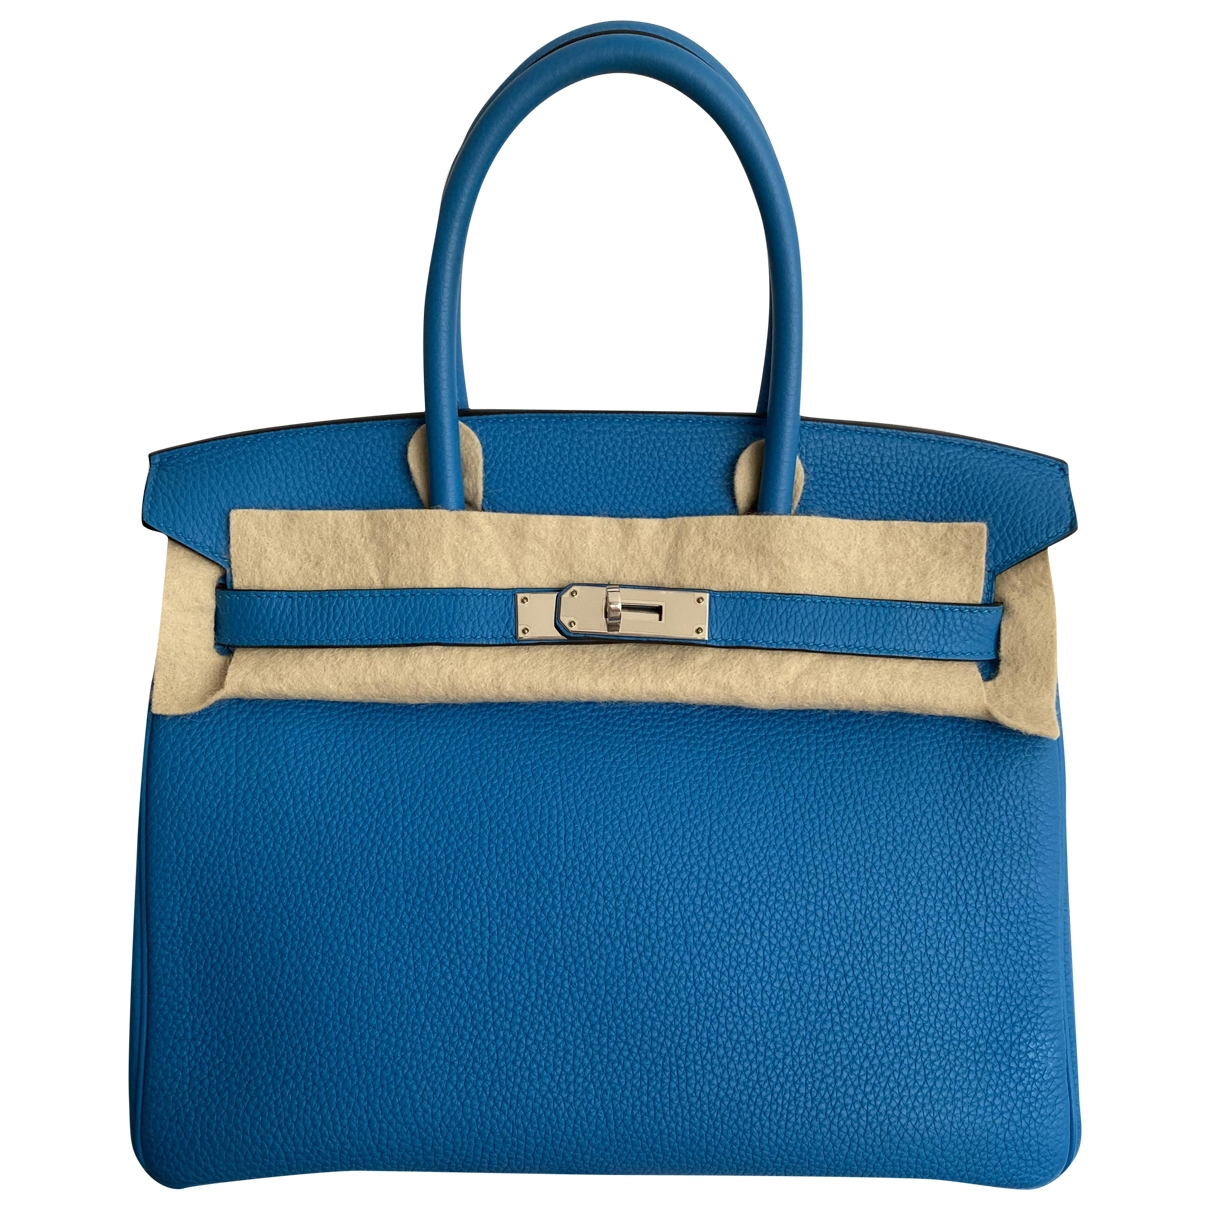 Hermès Birkin 30 Blue Leather handbag for Women \N